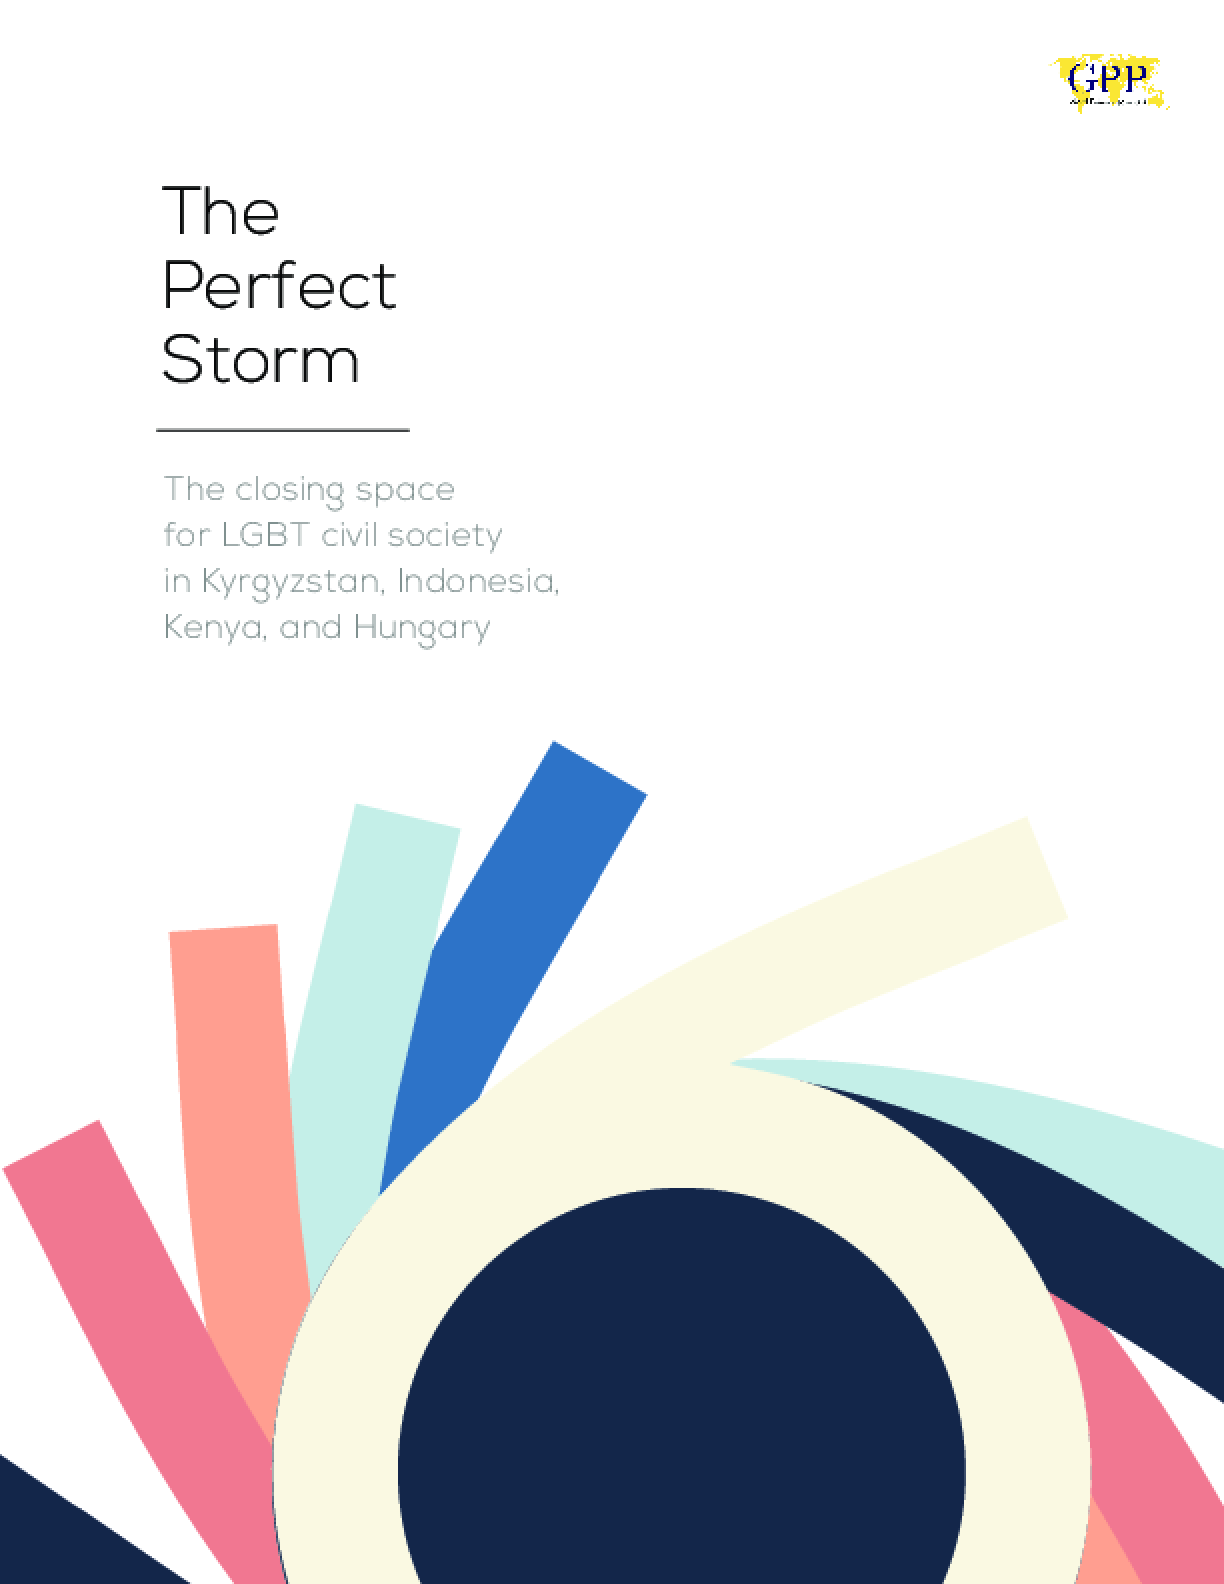 The Perfect Storm: The Closing Space for LGBT Civil Society in Kyrgyzstan, Indonesia, Kenya, and Hungary